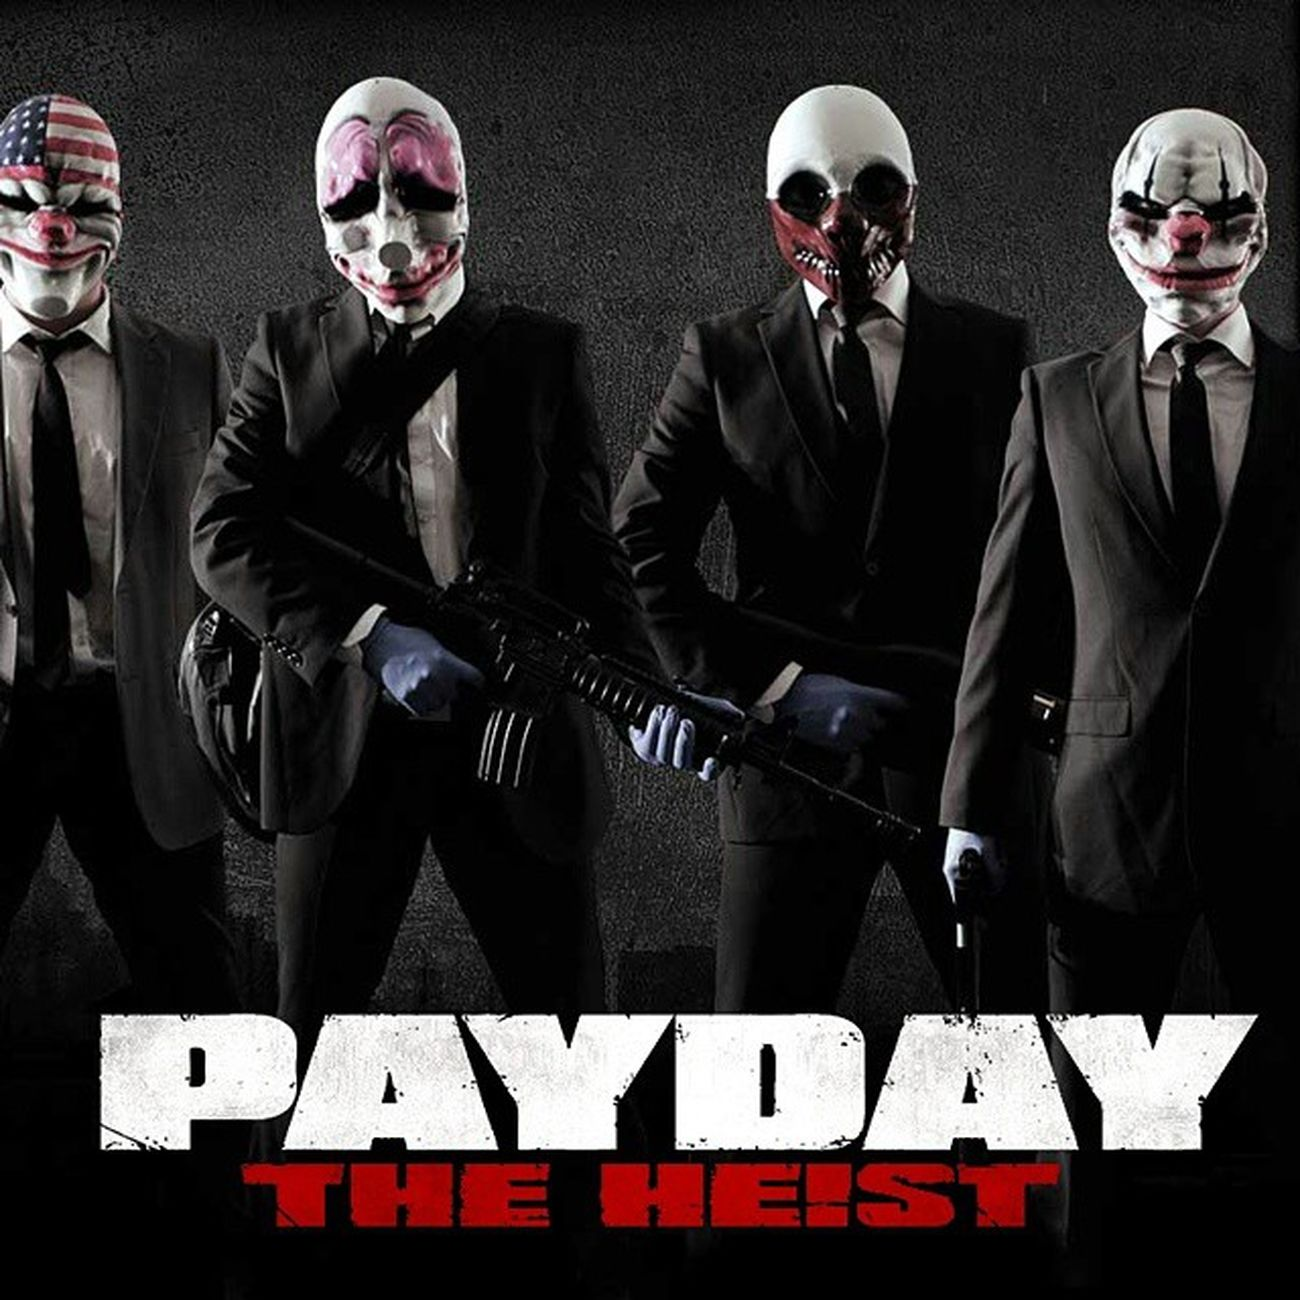 Why do we got to wear suits when robbing a bank? Dallas Hoxton Wolf Payday Theheist